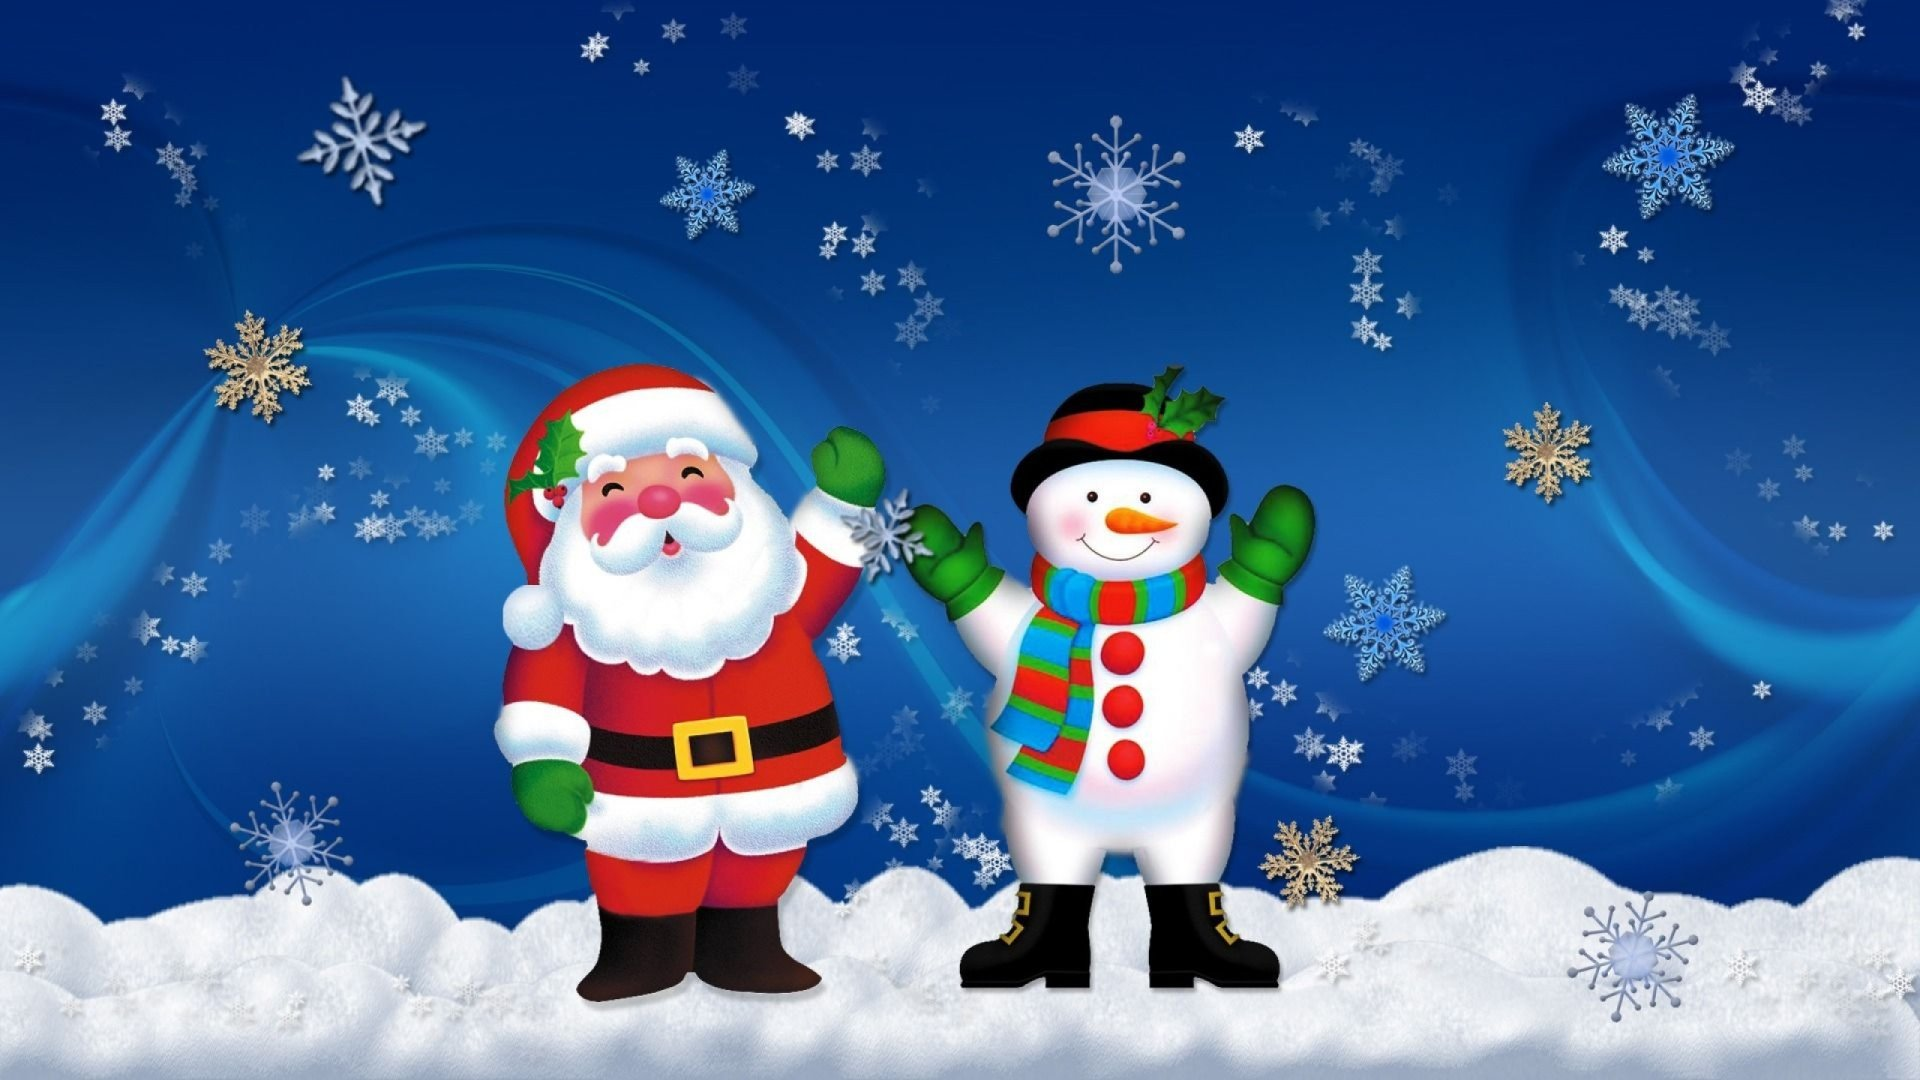 Holiday - Christmas  Snowman Santa Snowflake Wallpaper